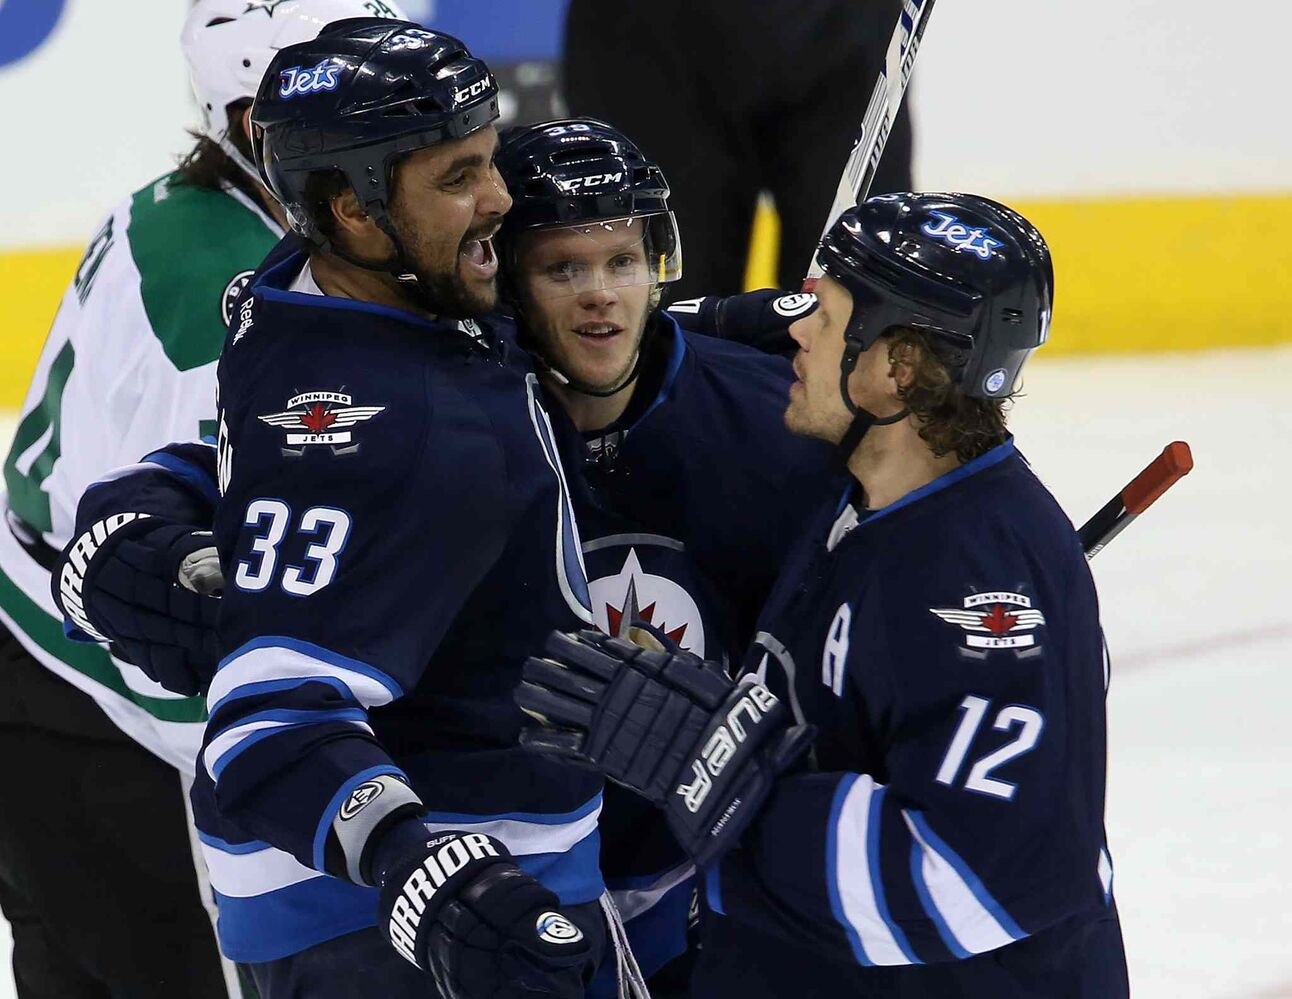 The Winnipeg Jets Dustin Byfuglien (33), Tobias Enstrom (centre) and Olli Jokinen celebrate Enstrom's first-period goal. (TREVOR HAGAN / THE CANADIAN PRESS)